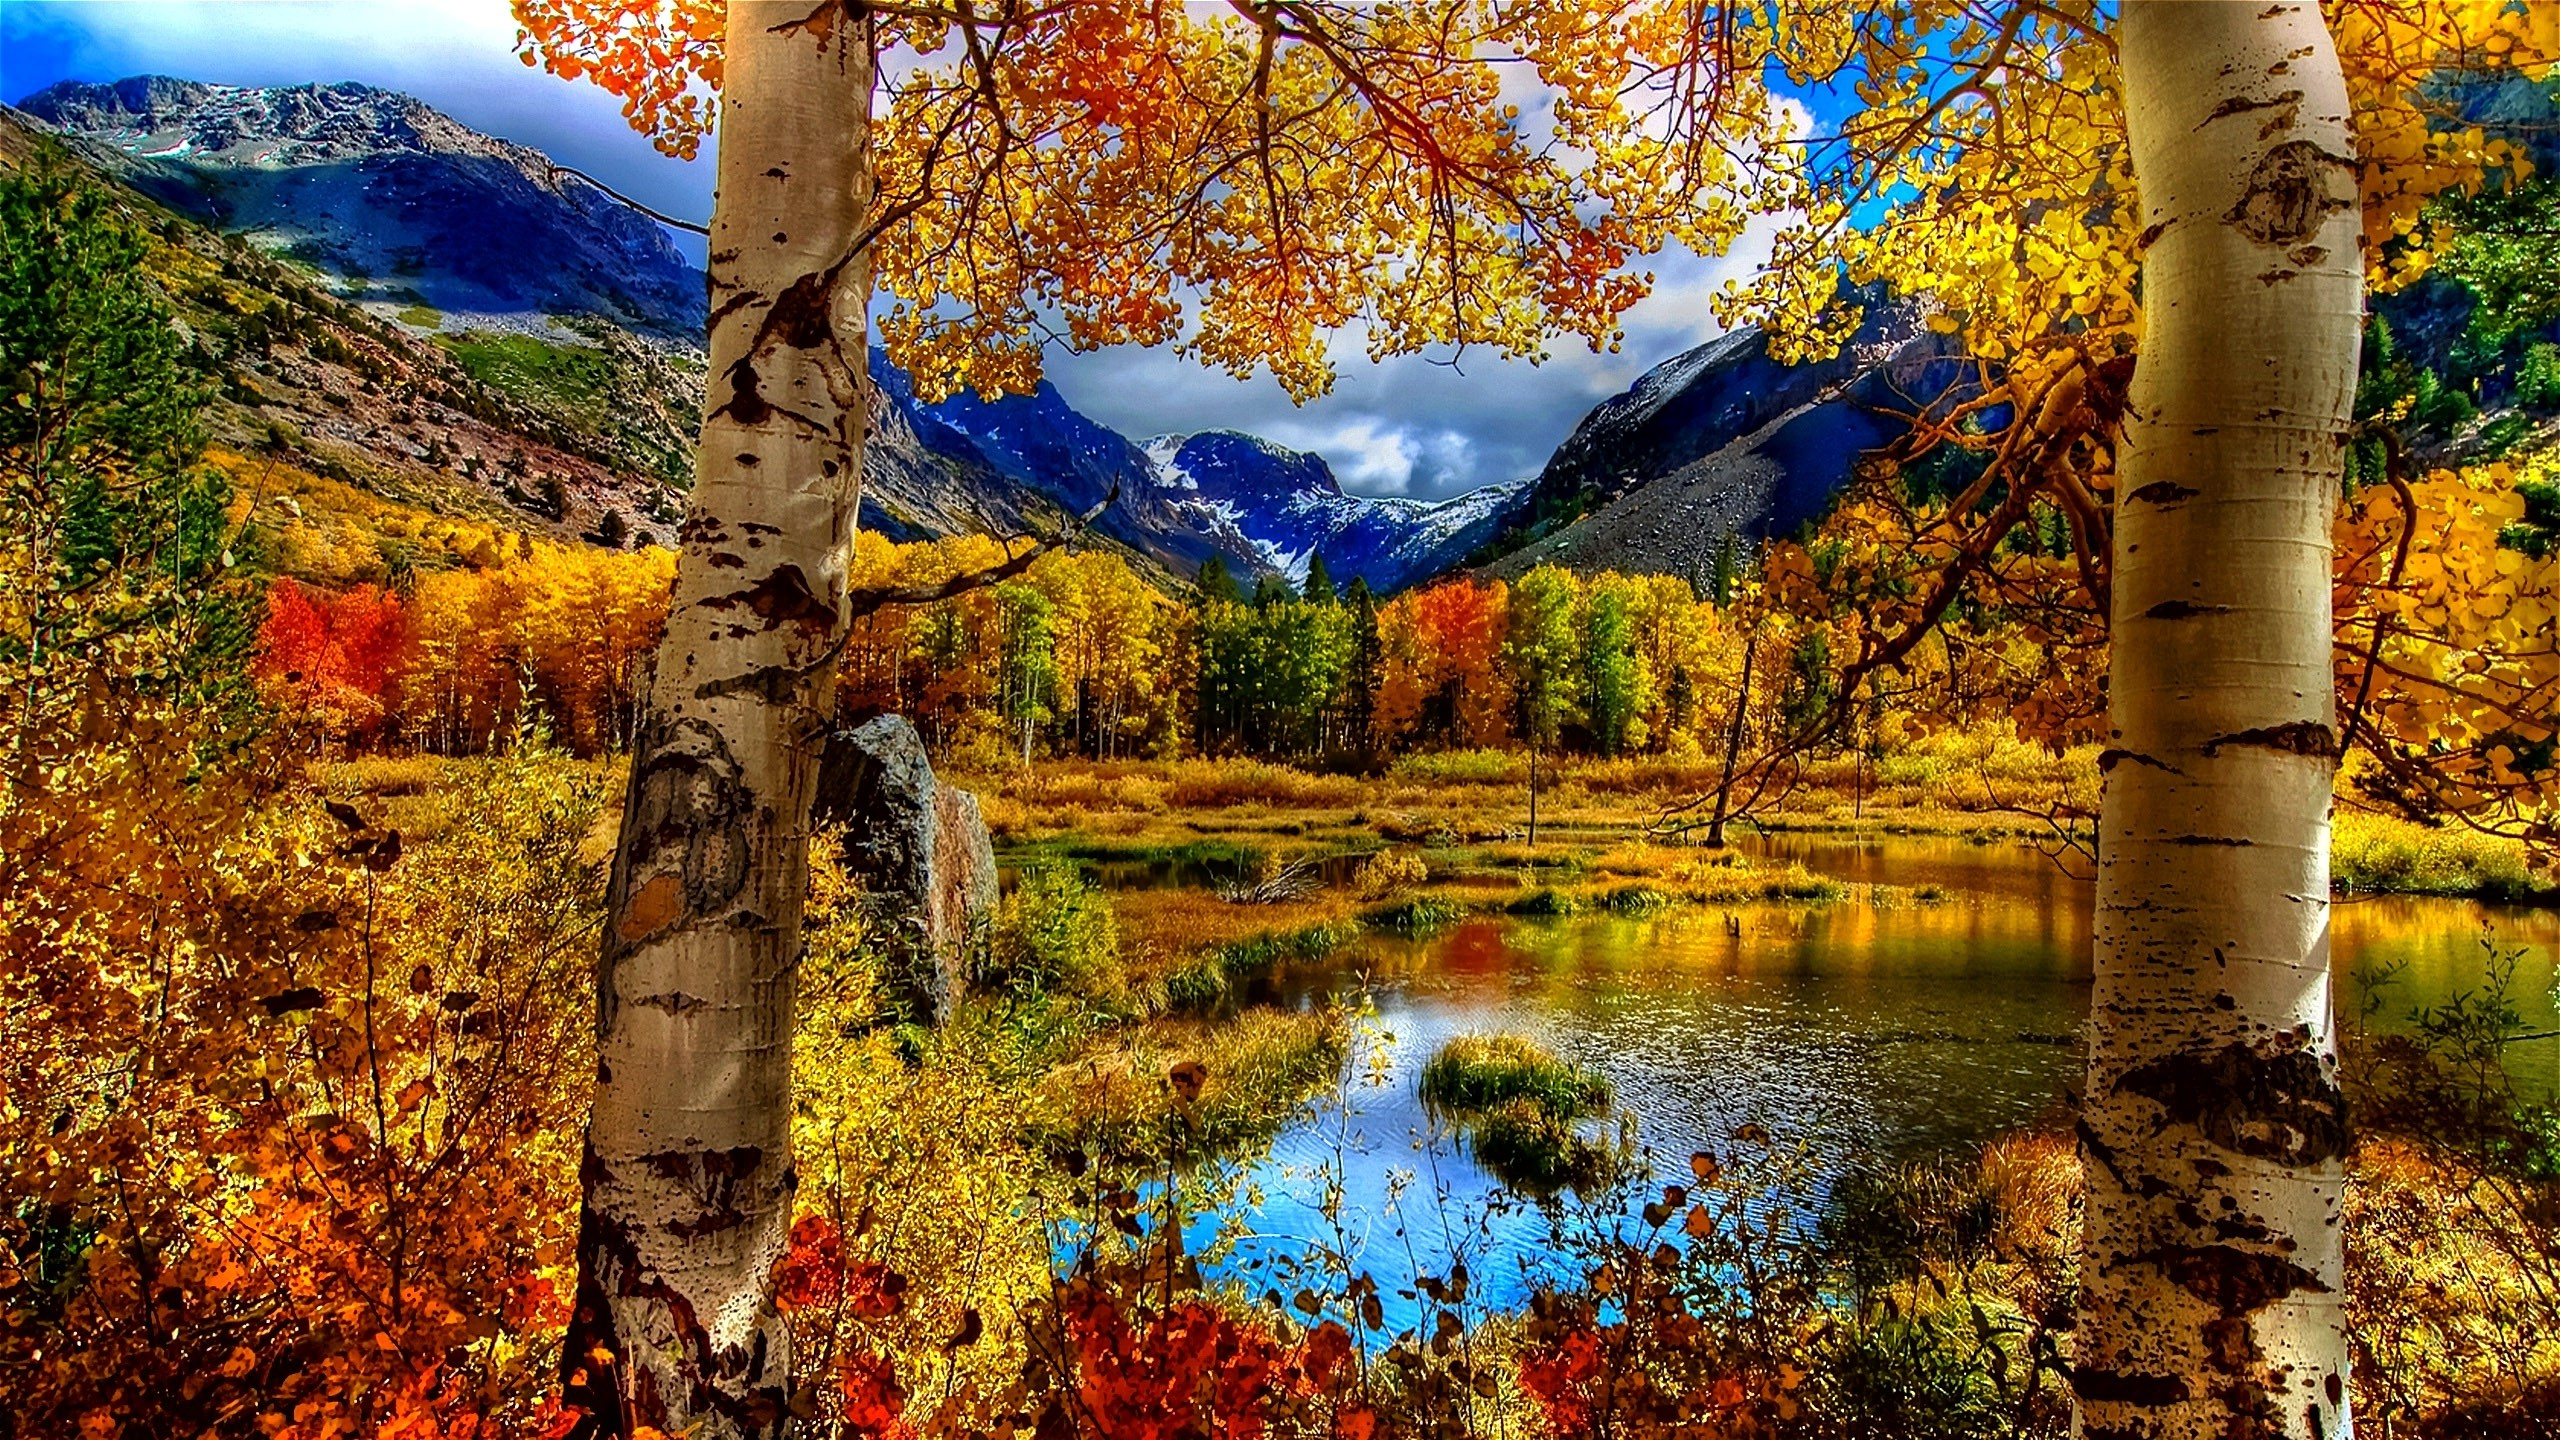 Fall Computer Backgrounds (76+ images)